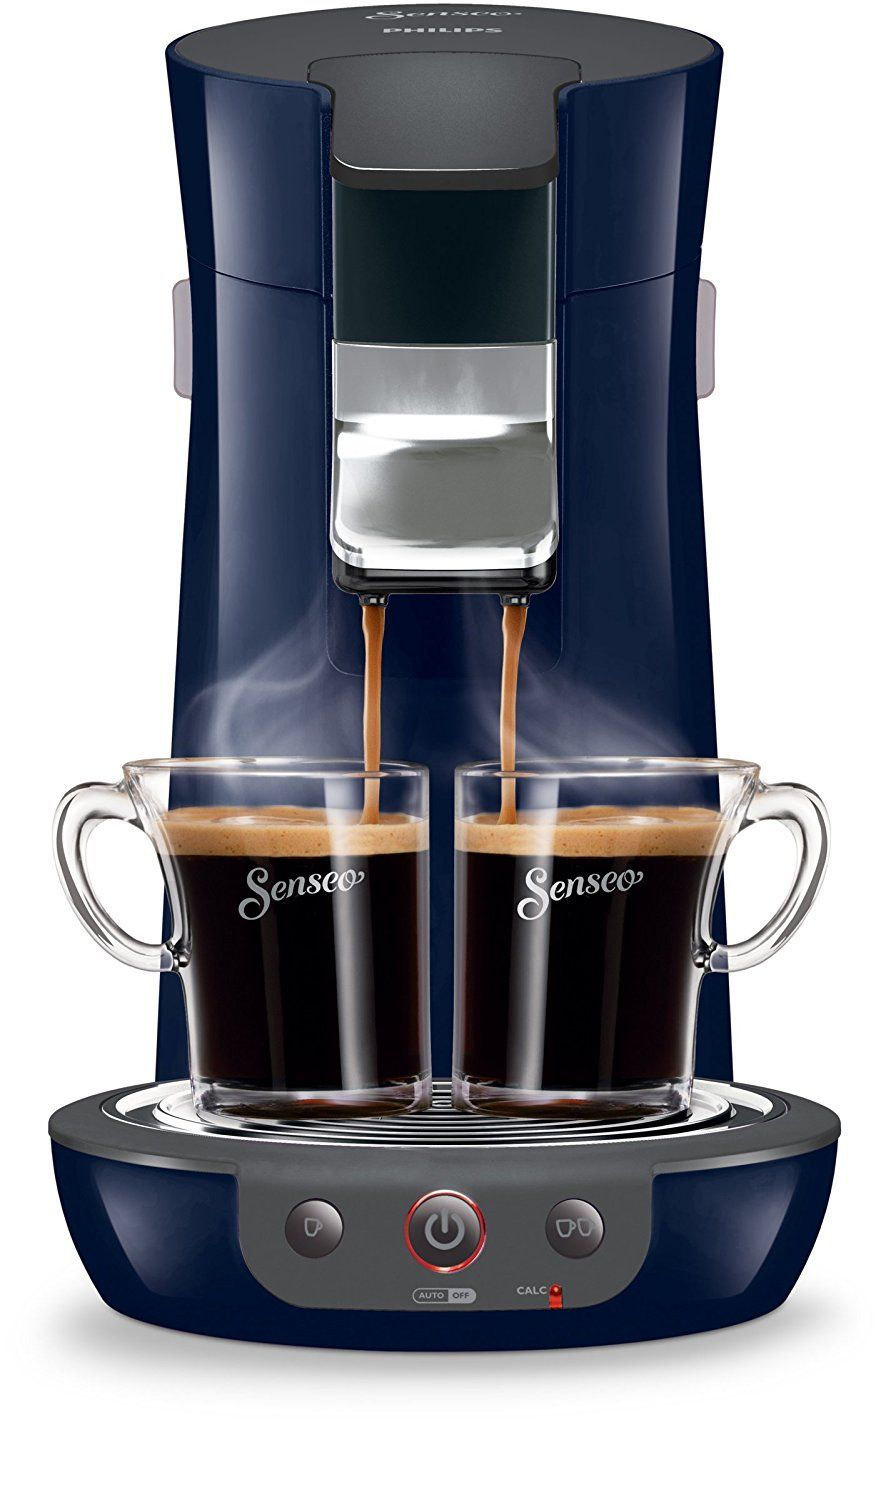 philips senseo hd7825 coffee makers fullyauto espresso machine